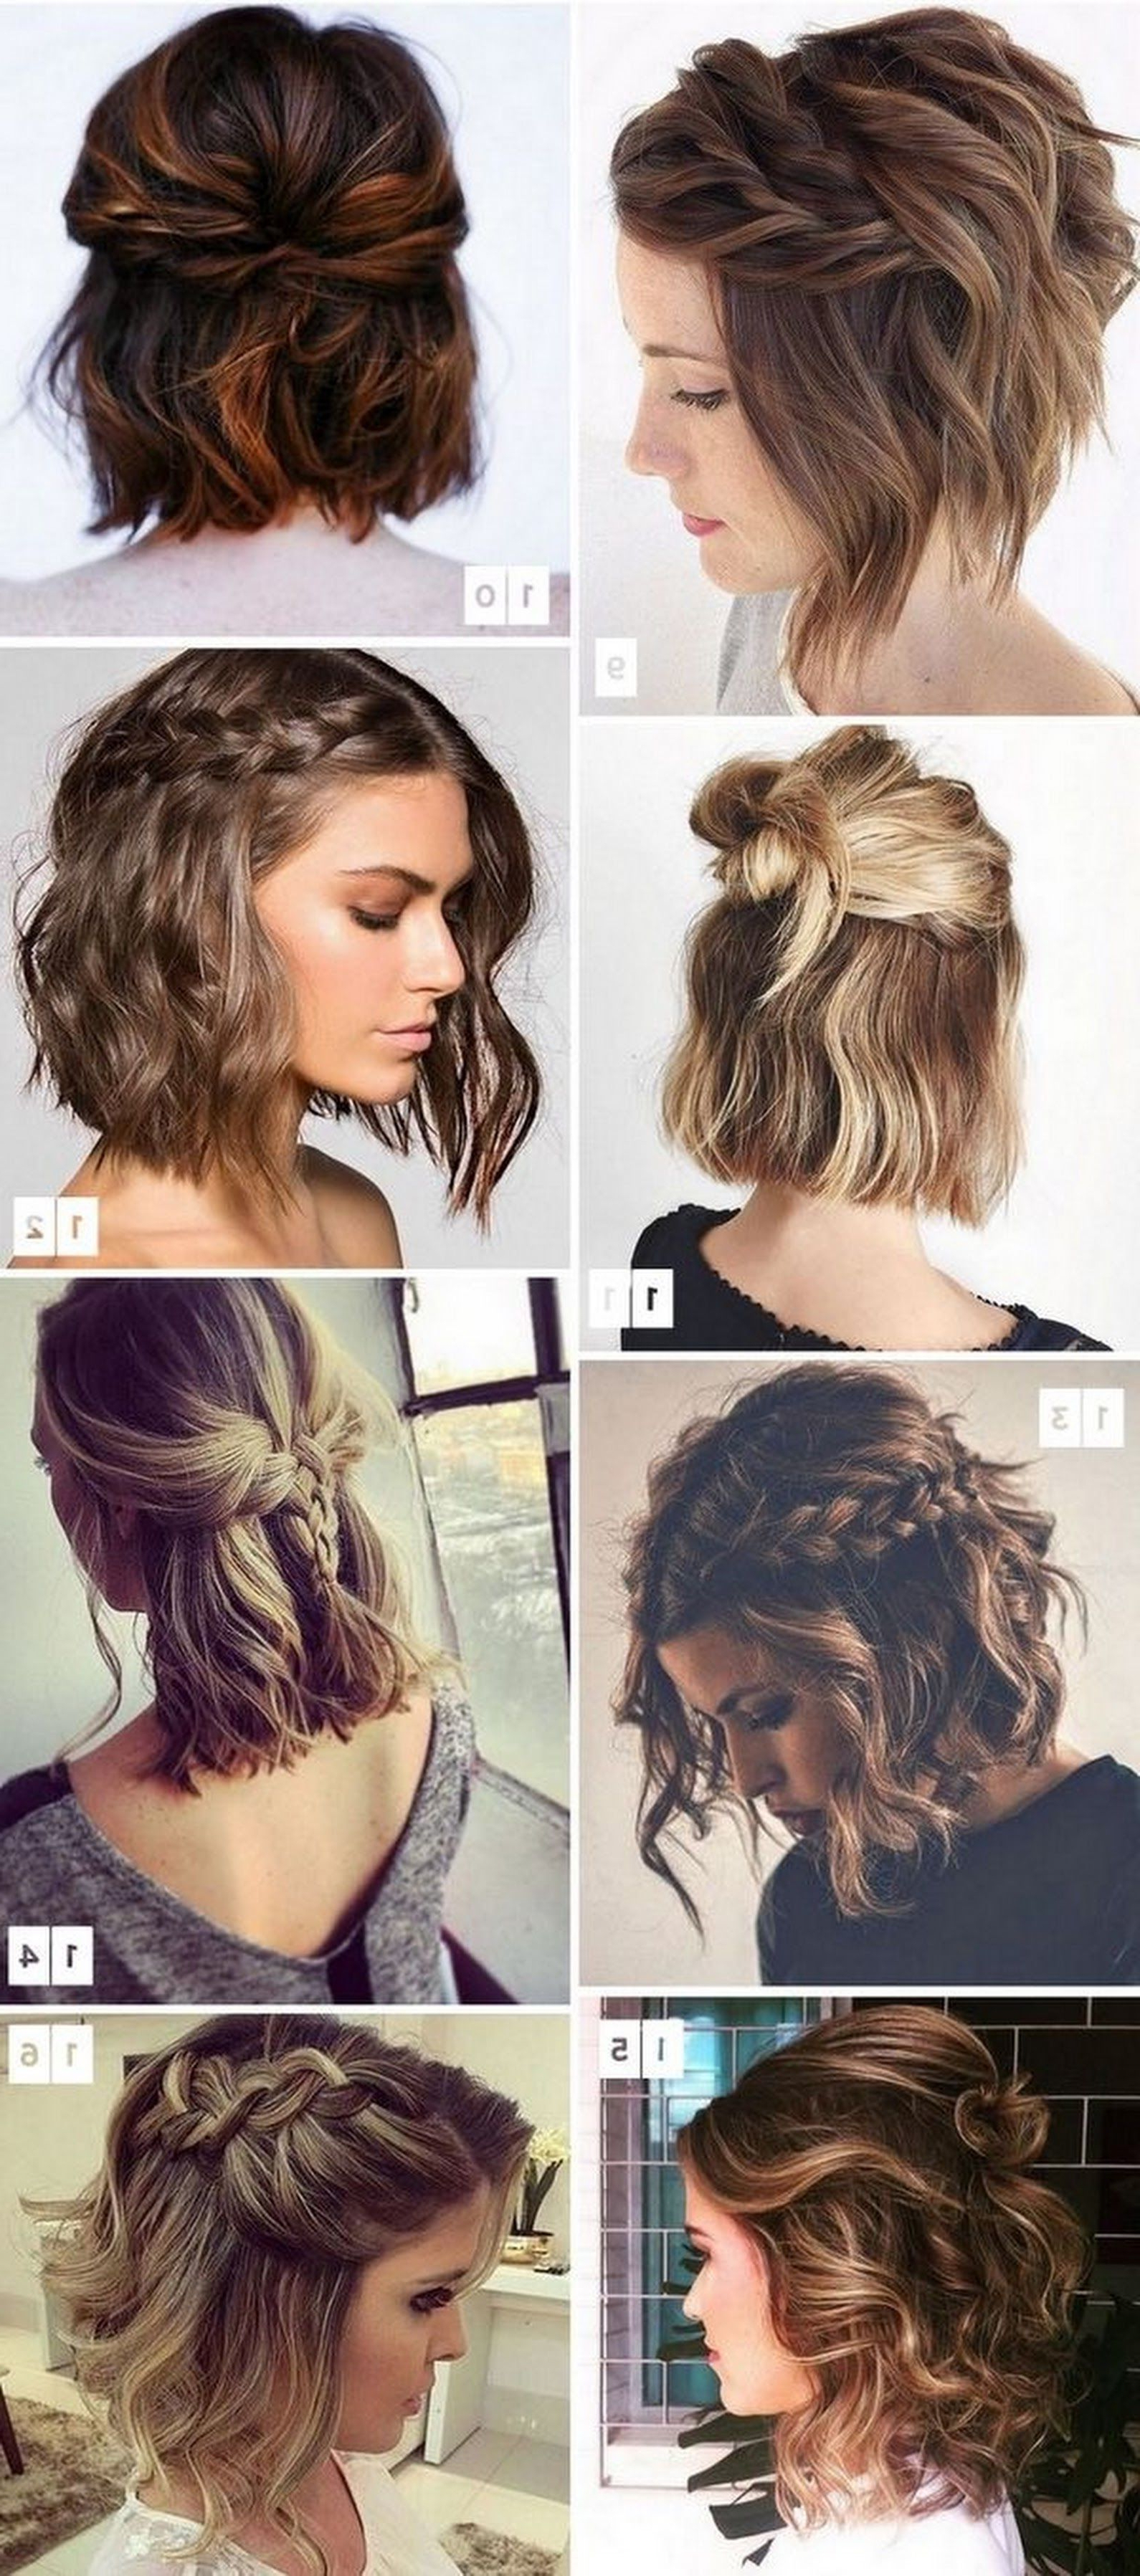 Pincountry Girl On Hair | Pinterest | Hair Style, Makeup And For Prom Short Hairstyles (View 17 of 25)